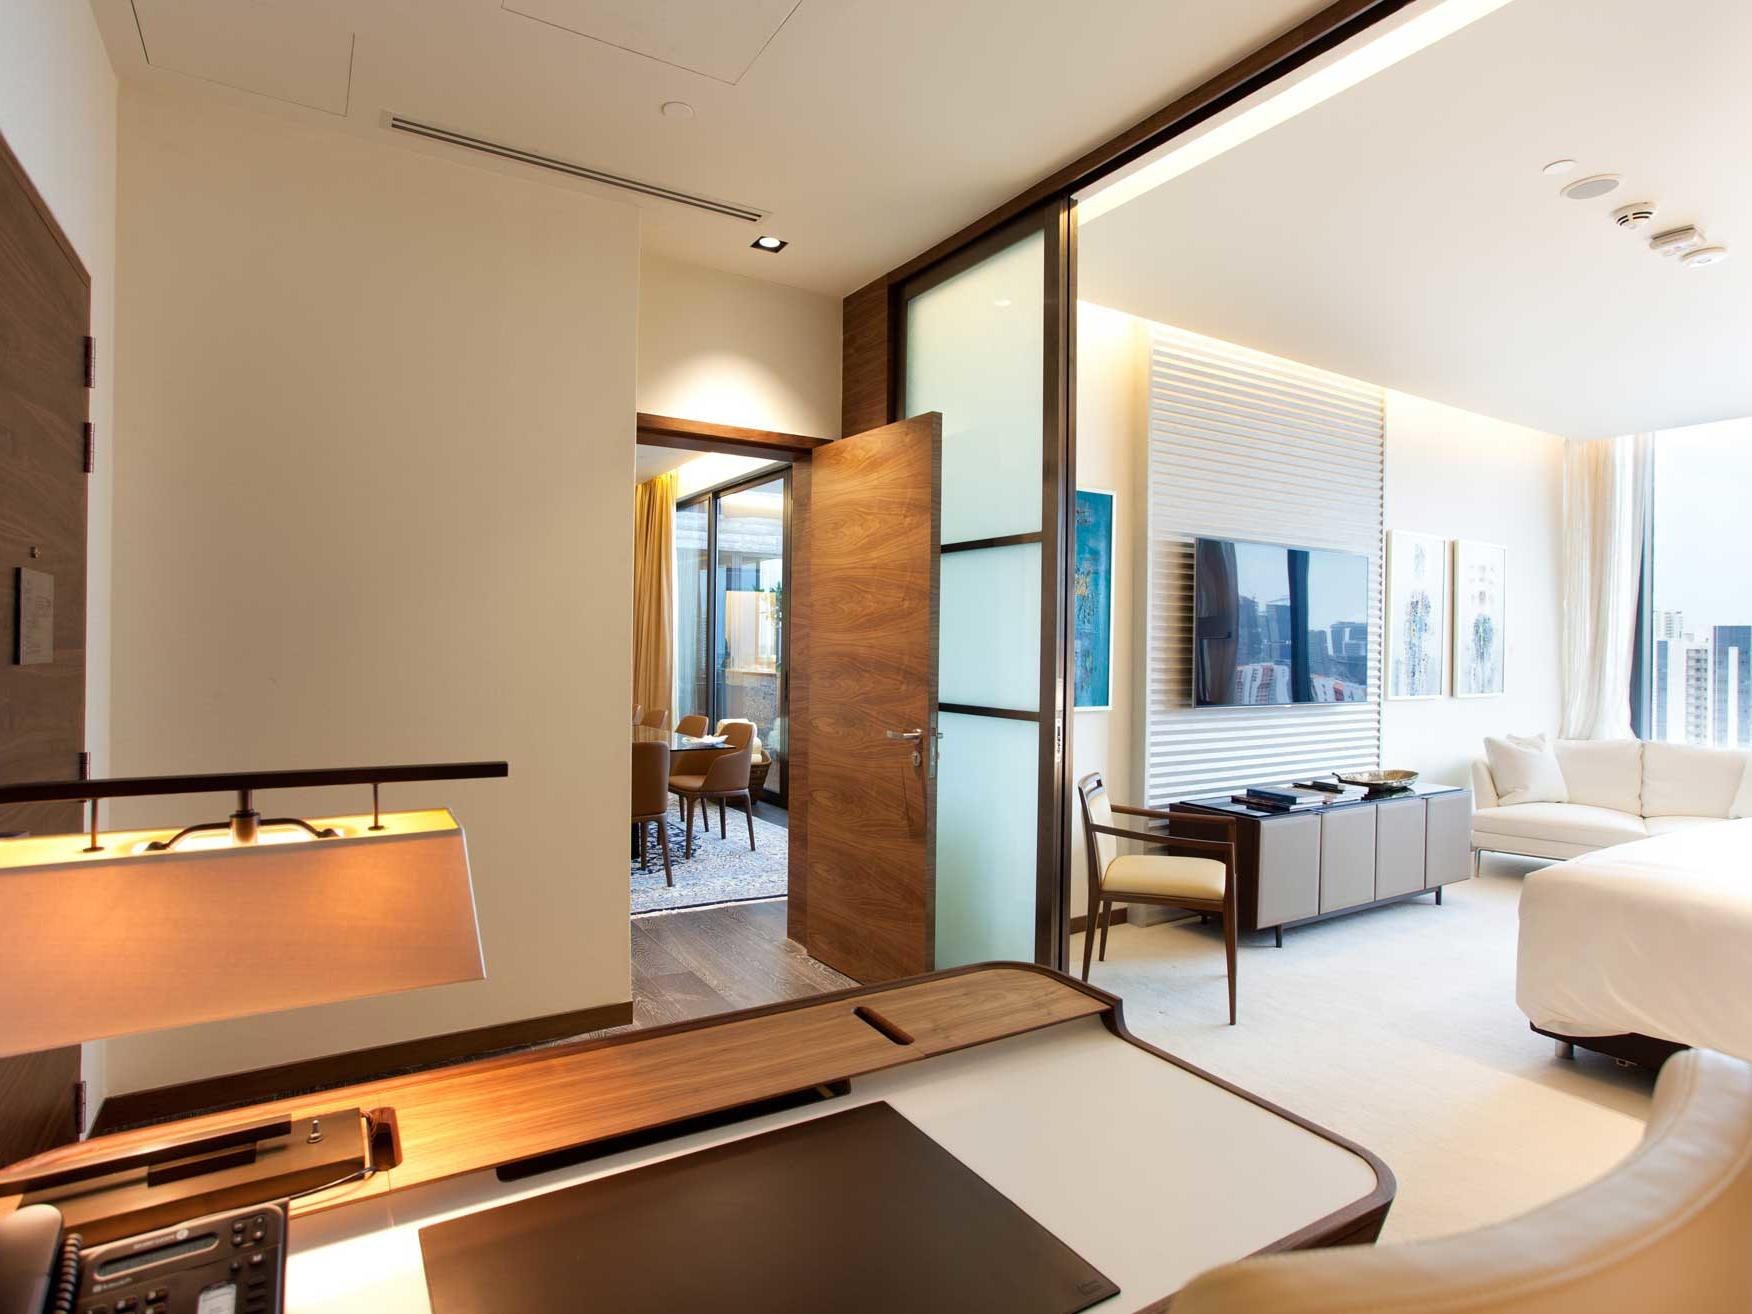 Interior of Presidential standard bedroom with workdesk at one farrer hotel